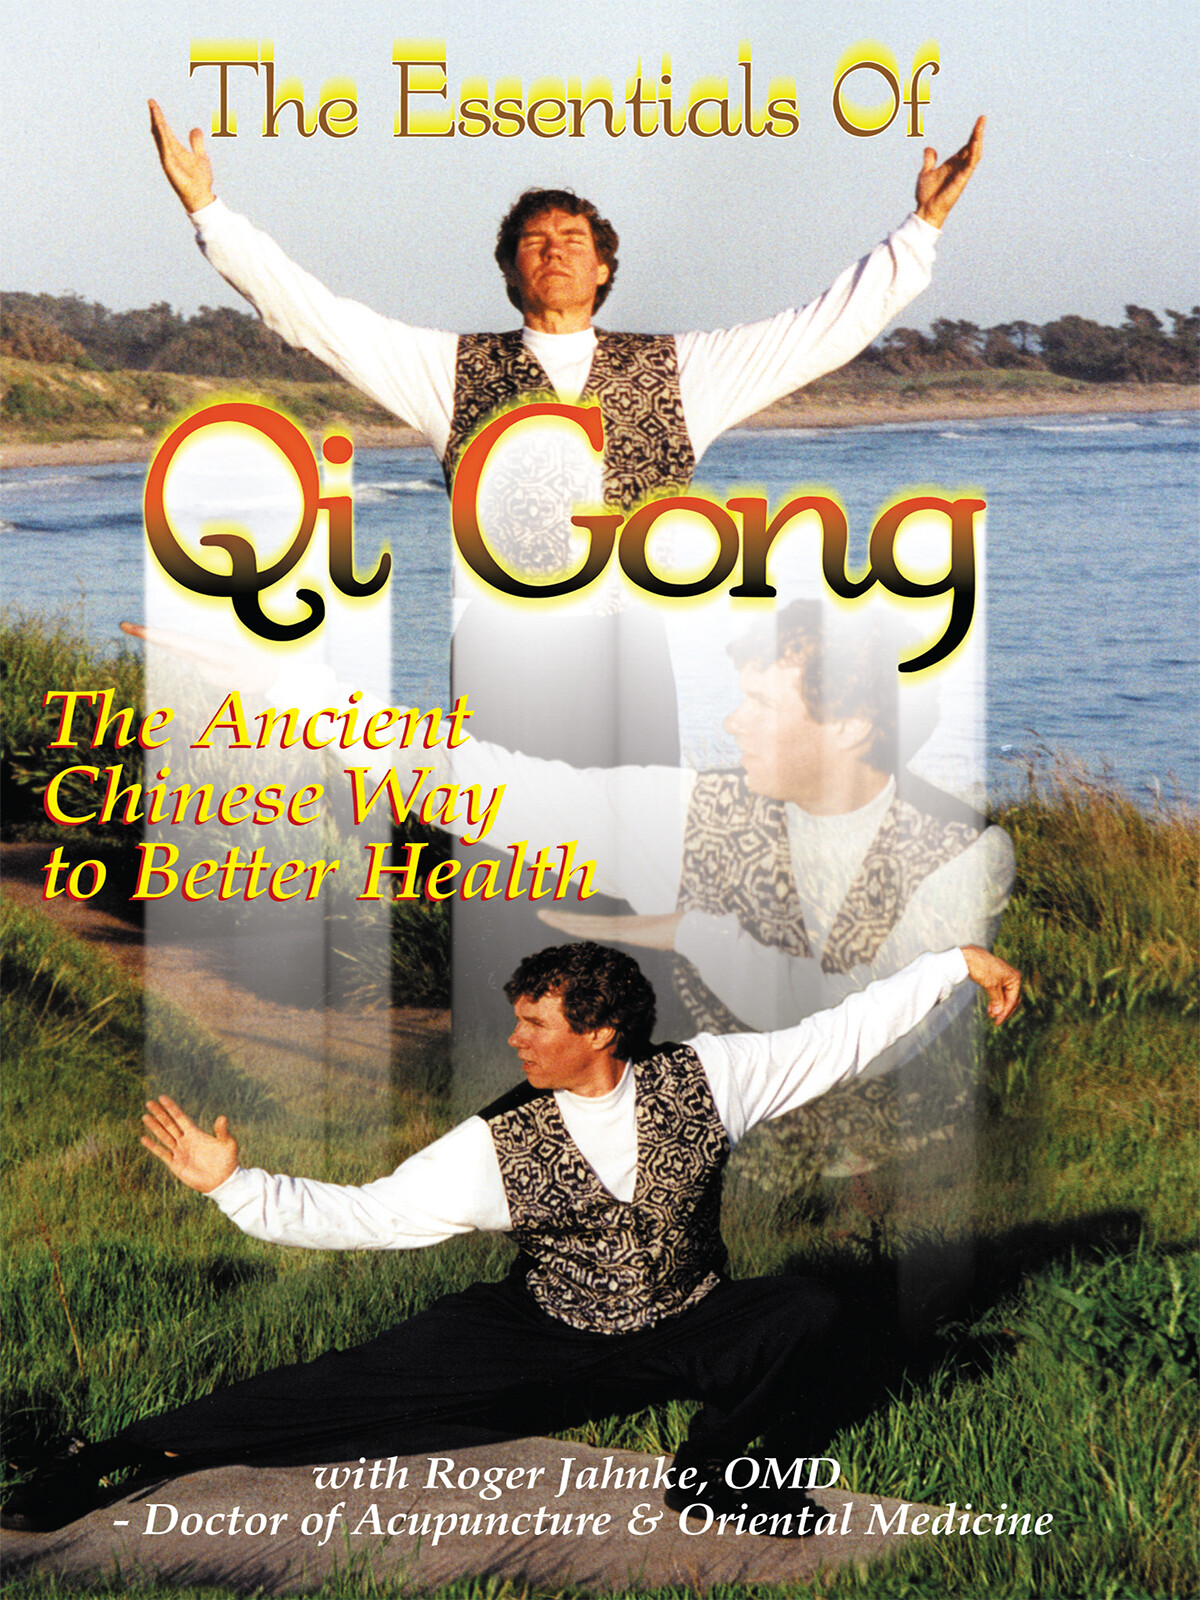 C95 - The Essentials Of Qi Gong